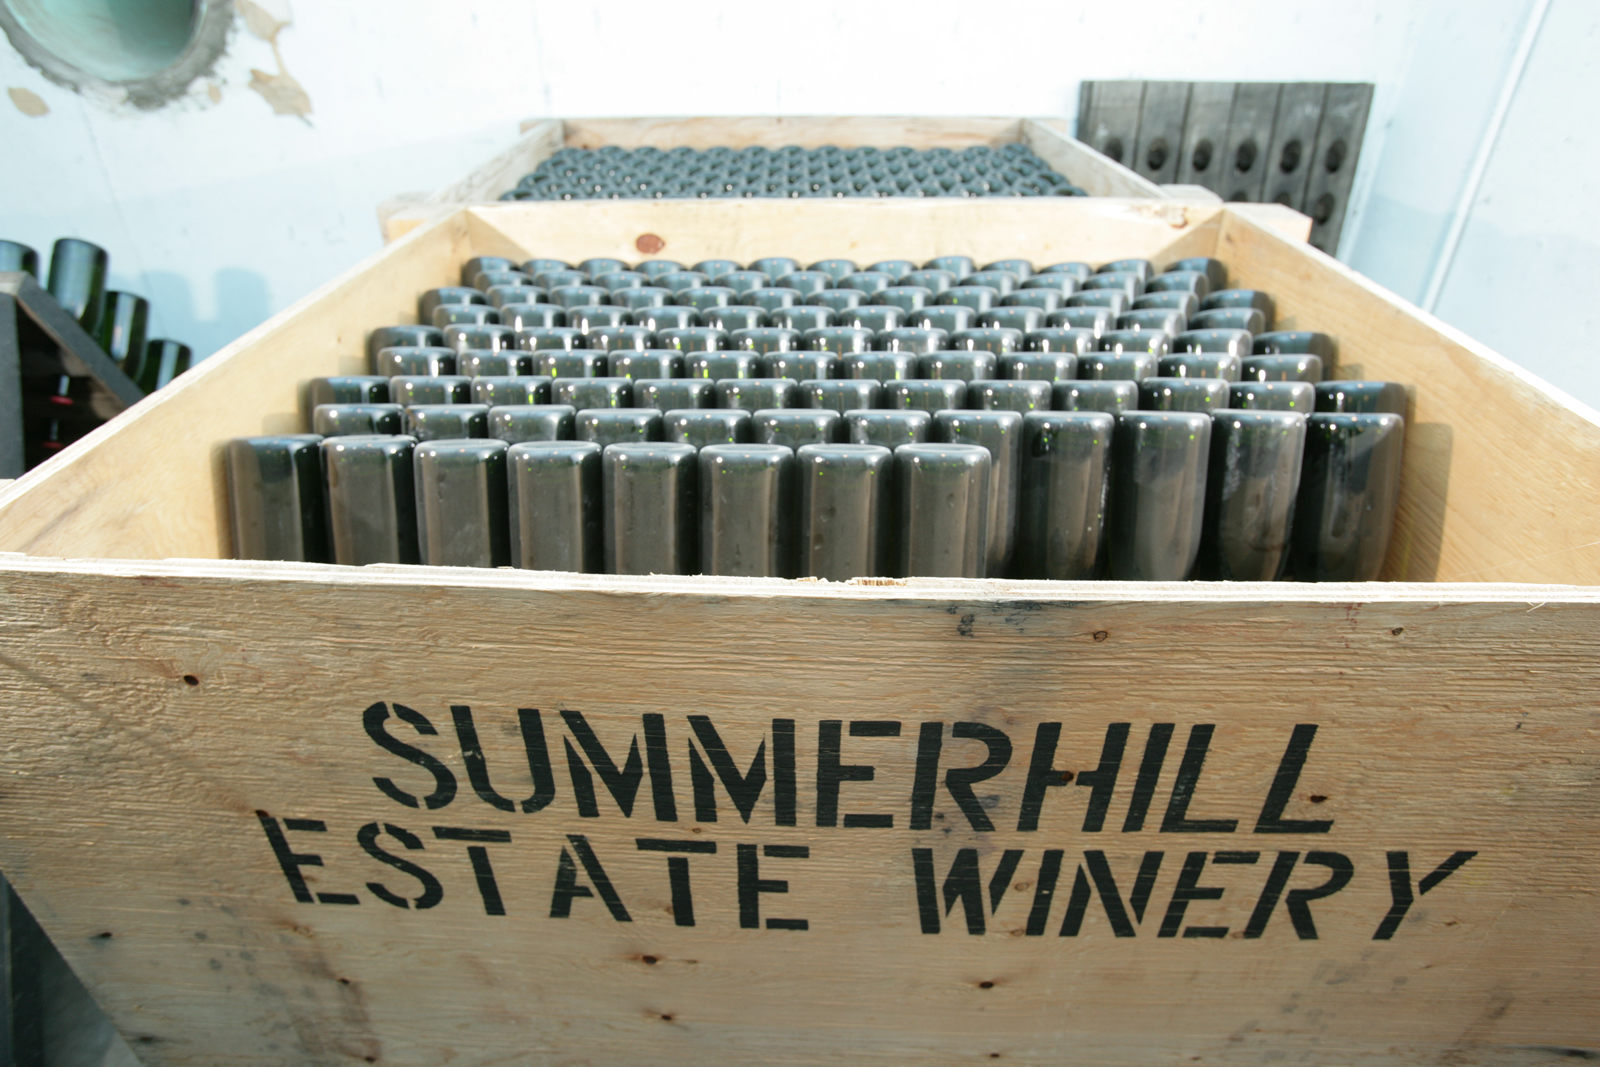 Summerhill Estate Winery